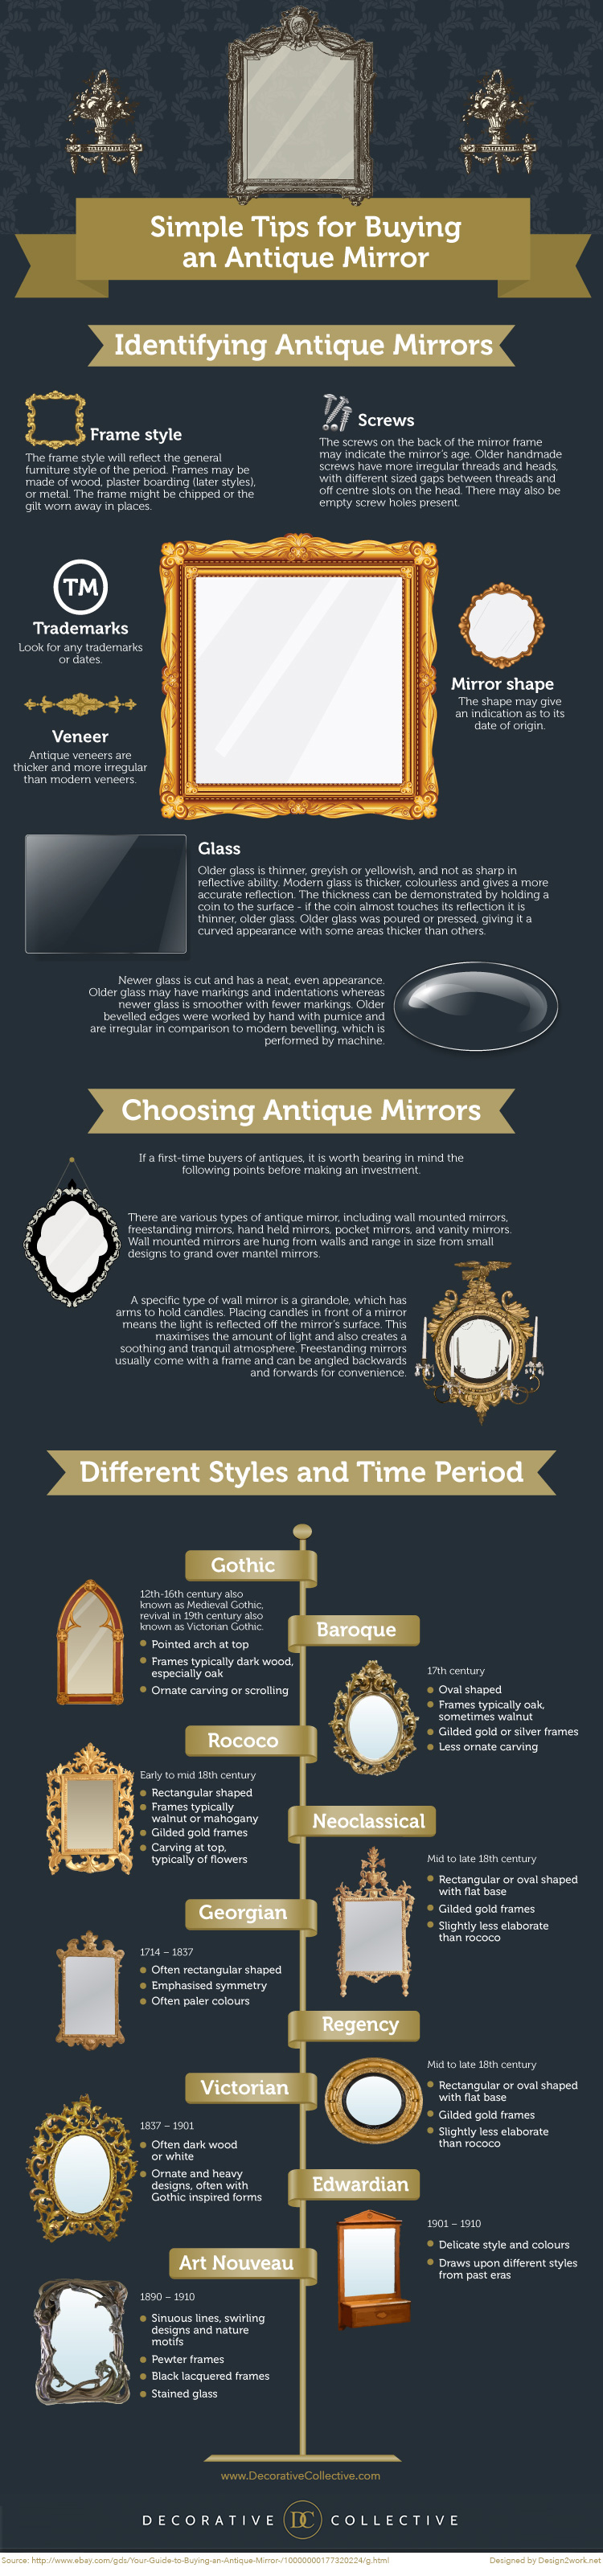 Infographic by DecorativeCollective.com